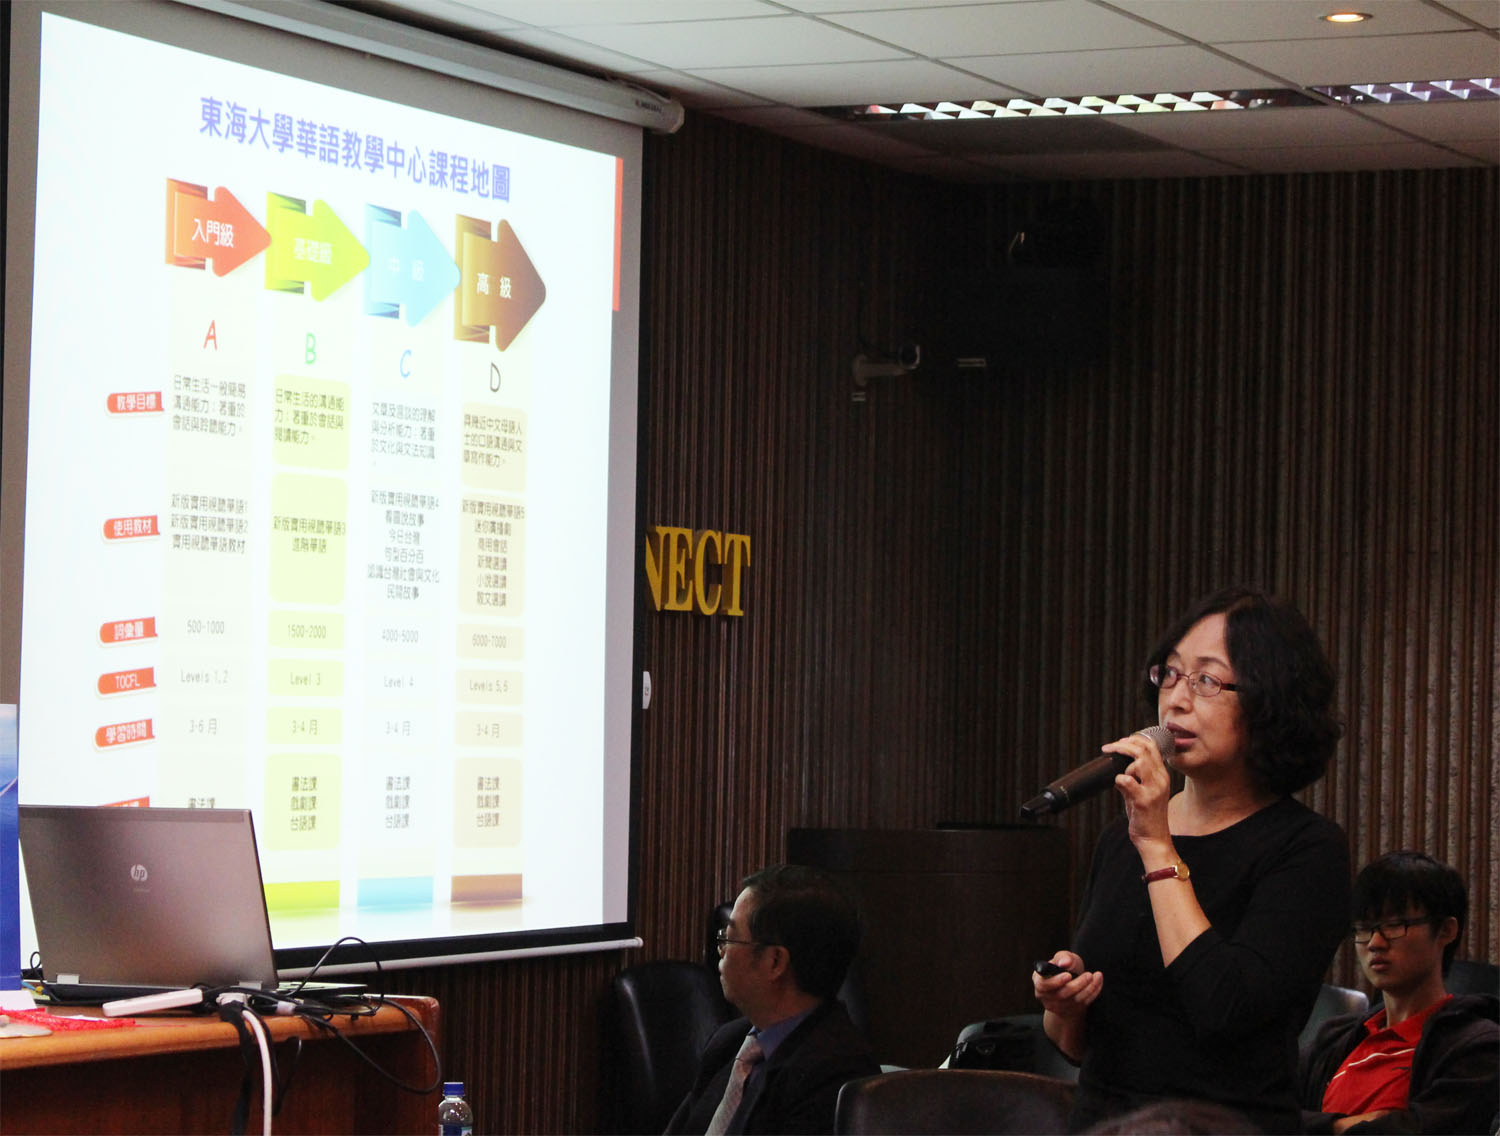 Prof. Qui-Gui Lai introduced Chinese Language Center